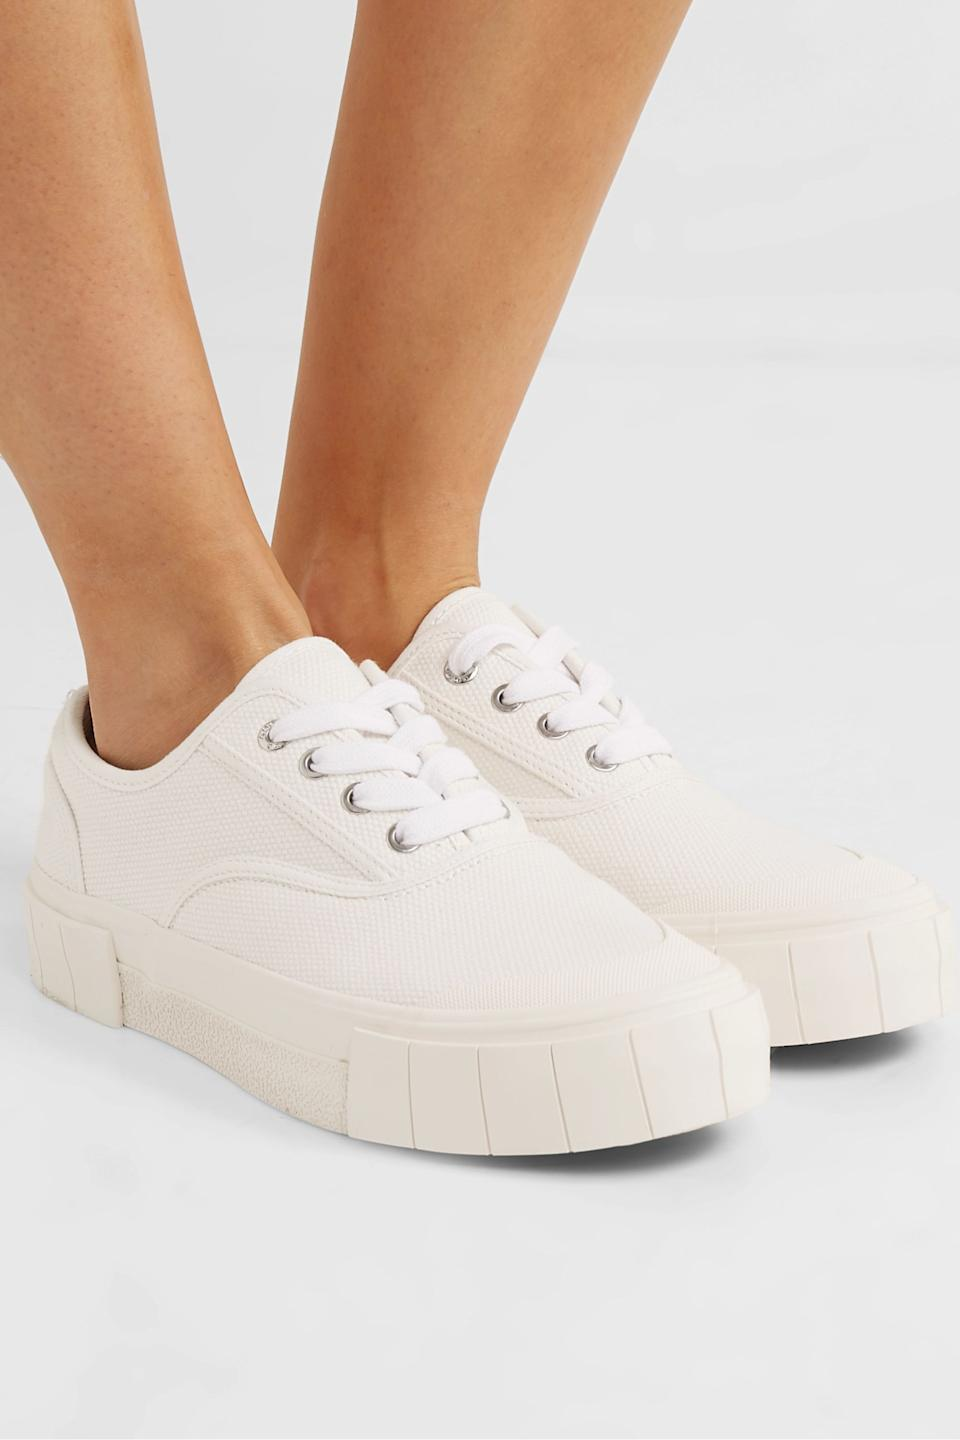 "<br><br><strong>Good News</strong> Organic cotton-canvas sneakers, $, available at <a href=""https://go.skimresources.com/?id=30283X879131&url=https%3A%2F%2Fwww.net-a-porter.com%2Fen-us%2Fshop%2Fproduct%2Fgood-news%2Fnet-sustain-organic-cotton-canvas-sneakers%2F1212948"" rel=""nofollow noopener"" target=""_blank"" data-ylk=""slk:Net-A-Porter"" class=""link rapid-noclick-resp"">Net-A-Porter</a>"